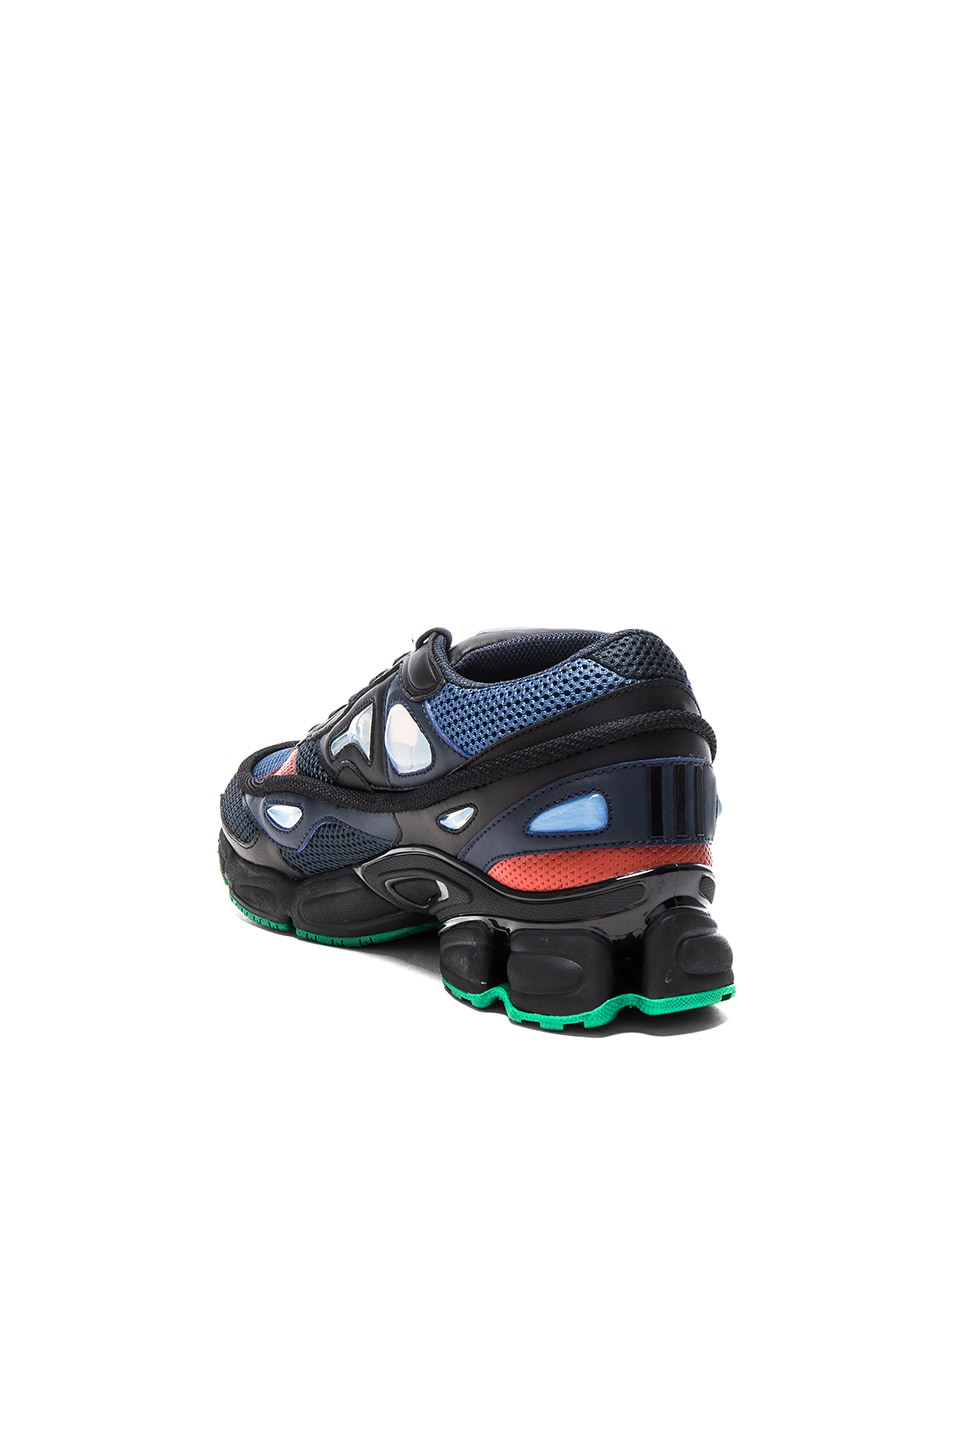 wholesale dealer 58a73 fab0d Image 3 of Raf Simons x Adidas Ozweego Bunny in Night Marine